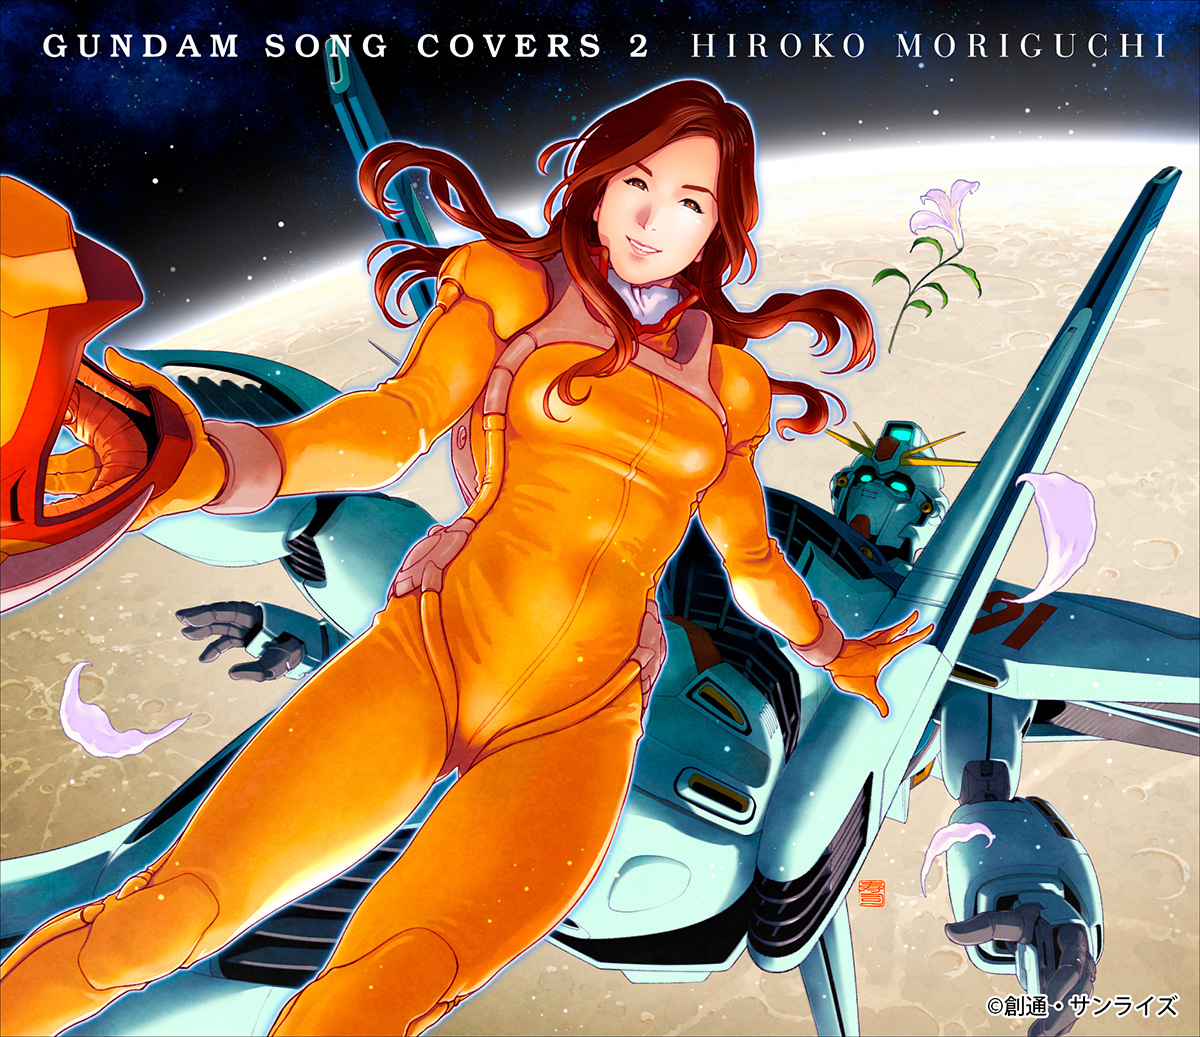 『GUNDAM SONG COVERS 2』